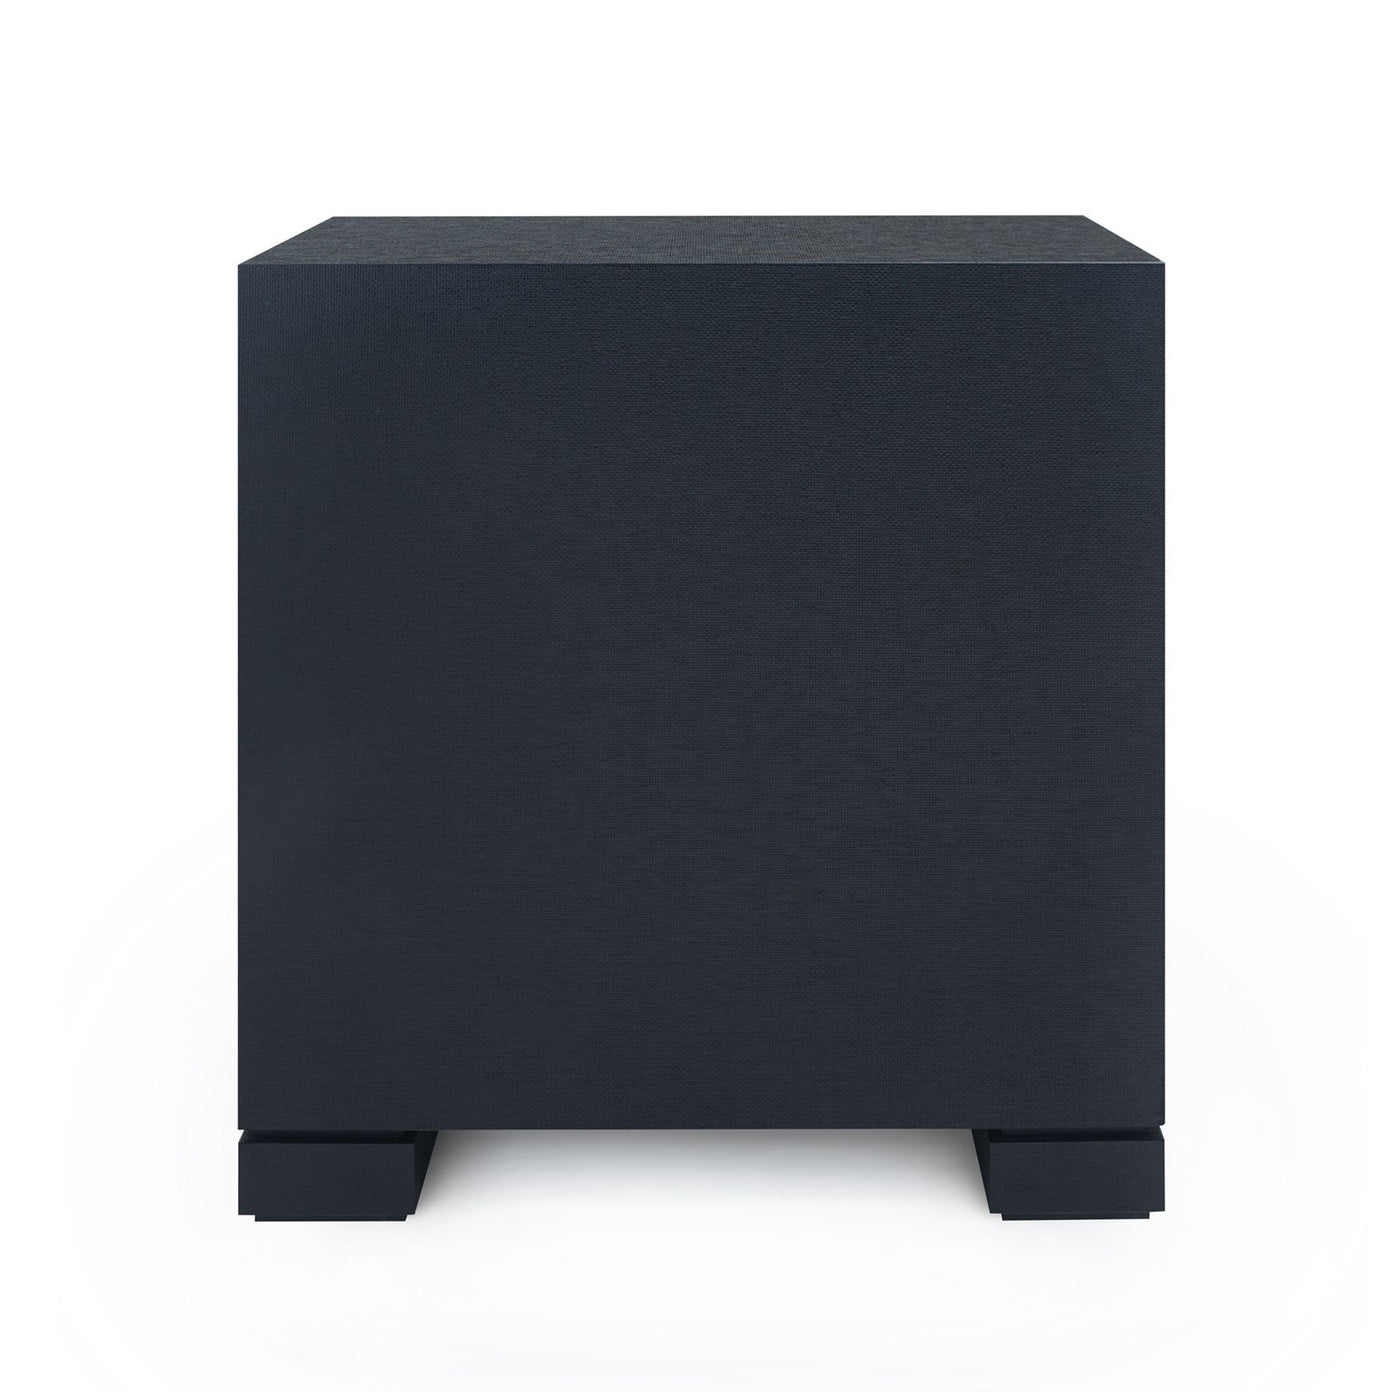 Bungalow 5 Frances 2 Drawer Side Table Black FRA-120-51 Back  bed side table, bedroom side tables, modern side table, black side table, side tables for living room